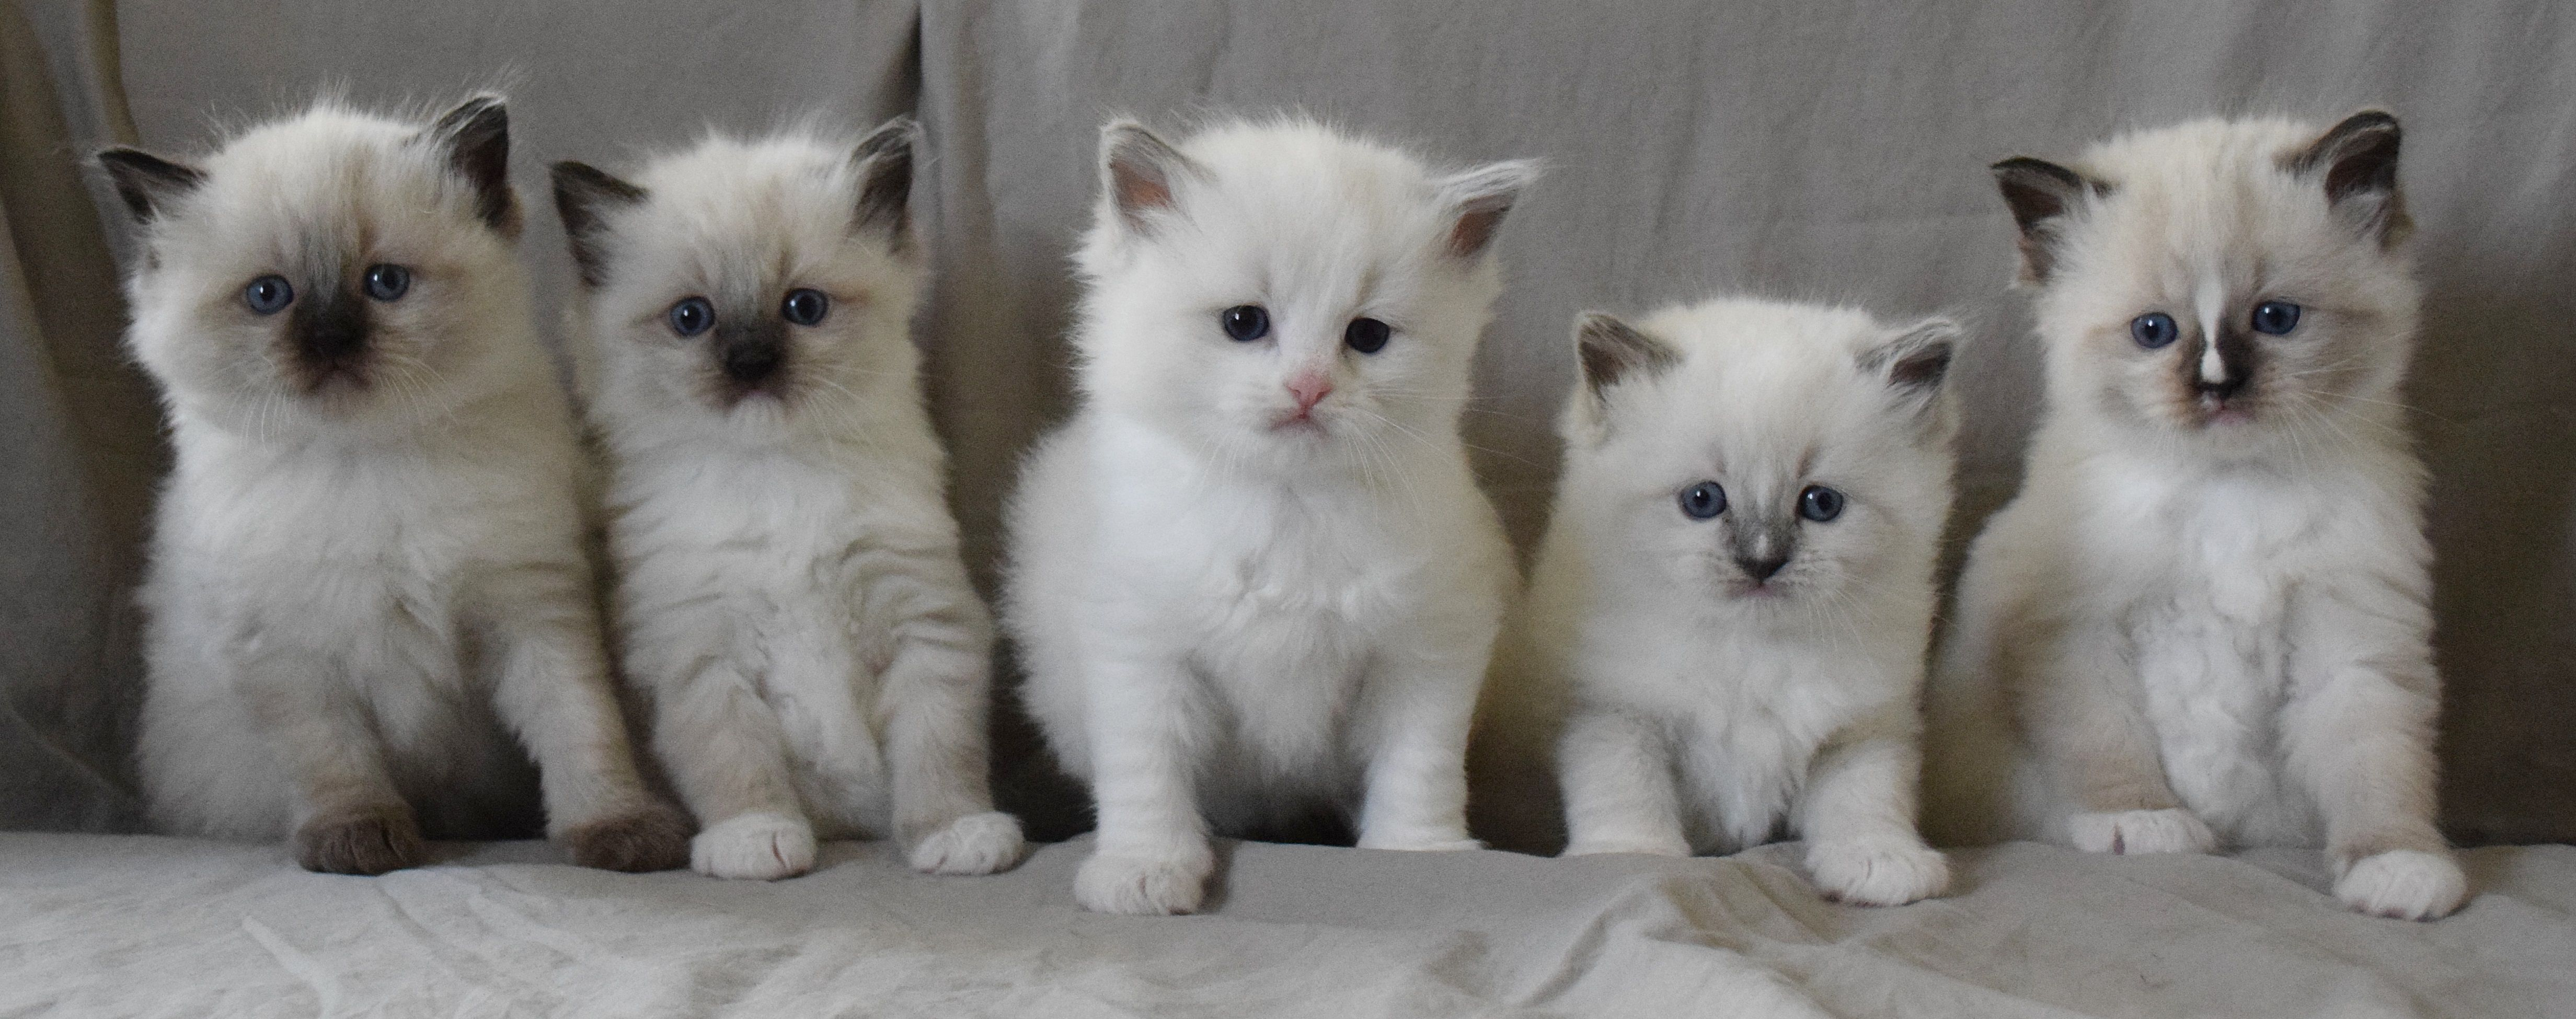 Some Of Our Lovely Babies Ohemgee Cats Cat Fluffycat Ragdolls Ragdoll Kittens Blueragdoll Bluepoint Blueeyes Ragdoll Kitten Fluffy Cat Cool Cats